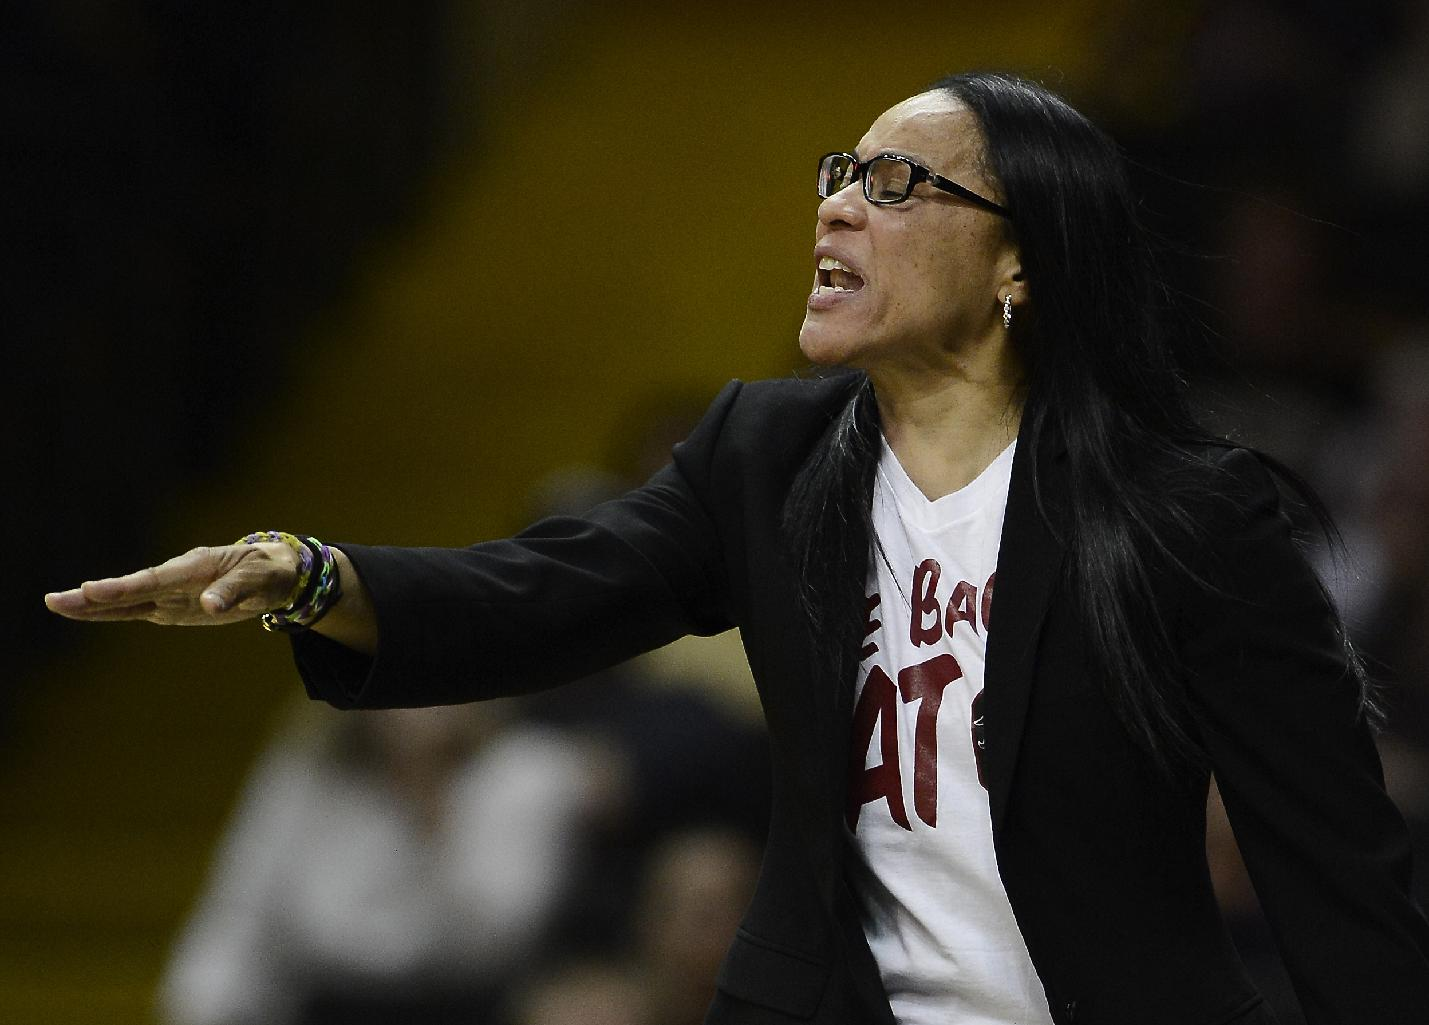 South Carolina head coach Dawn Staley directs her team against Vanderbilt in the second half of an NCAA college basketball game, Sunday, Jan. 26, 2014, in Nashville, Tenn. South Carolina won 61-57